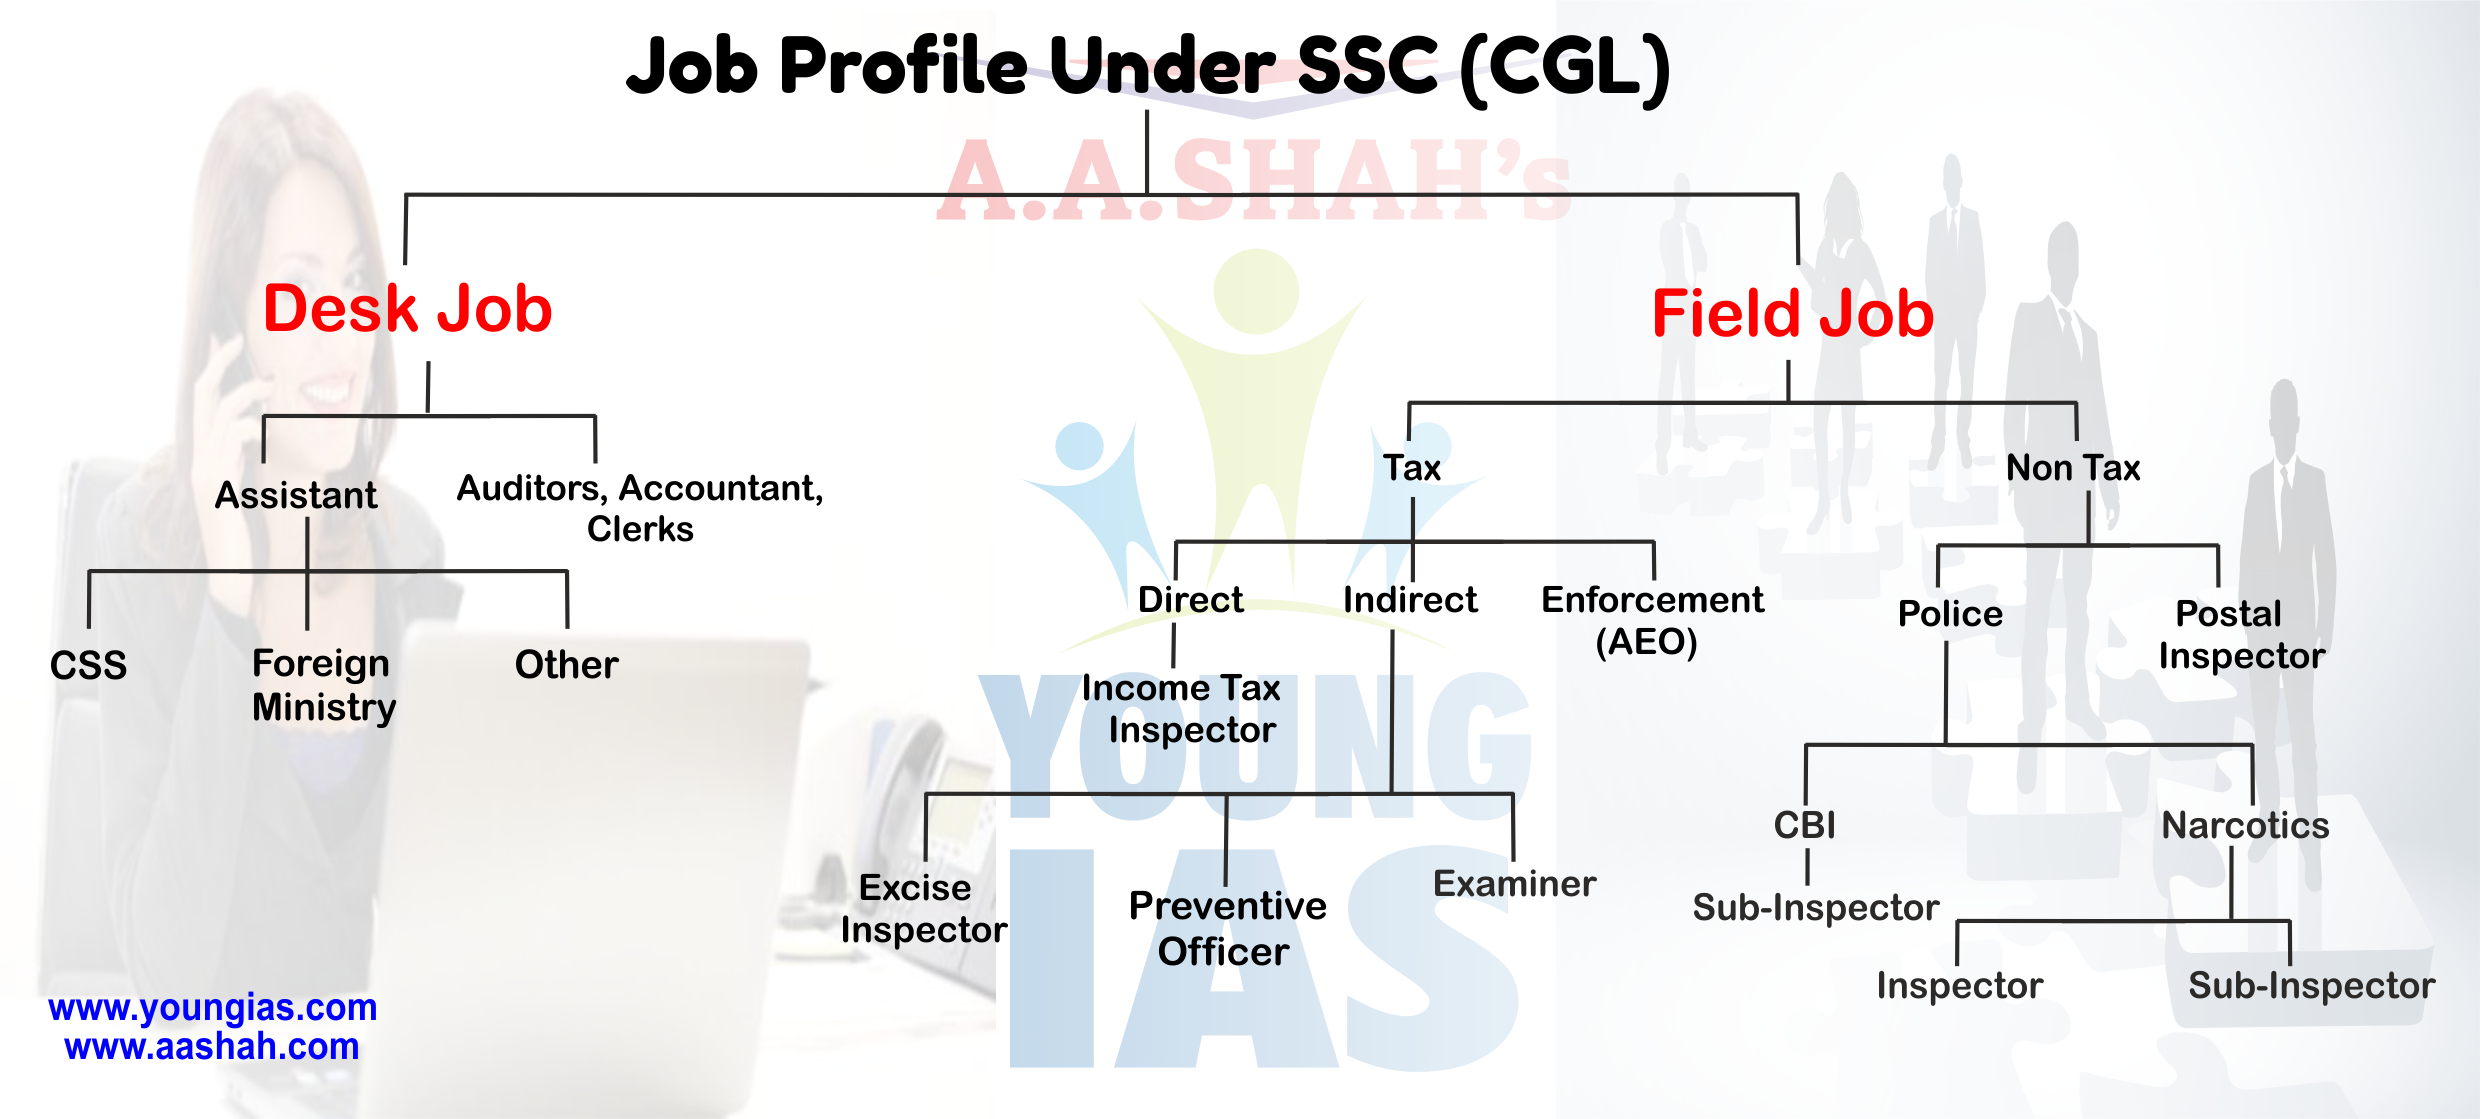 Job Profile Under SSC (CGL)